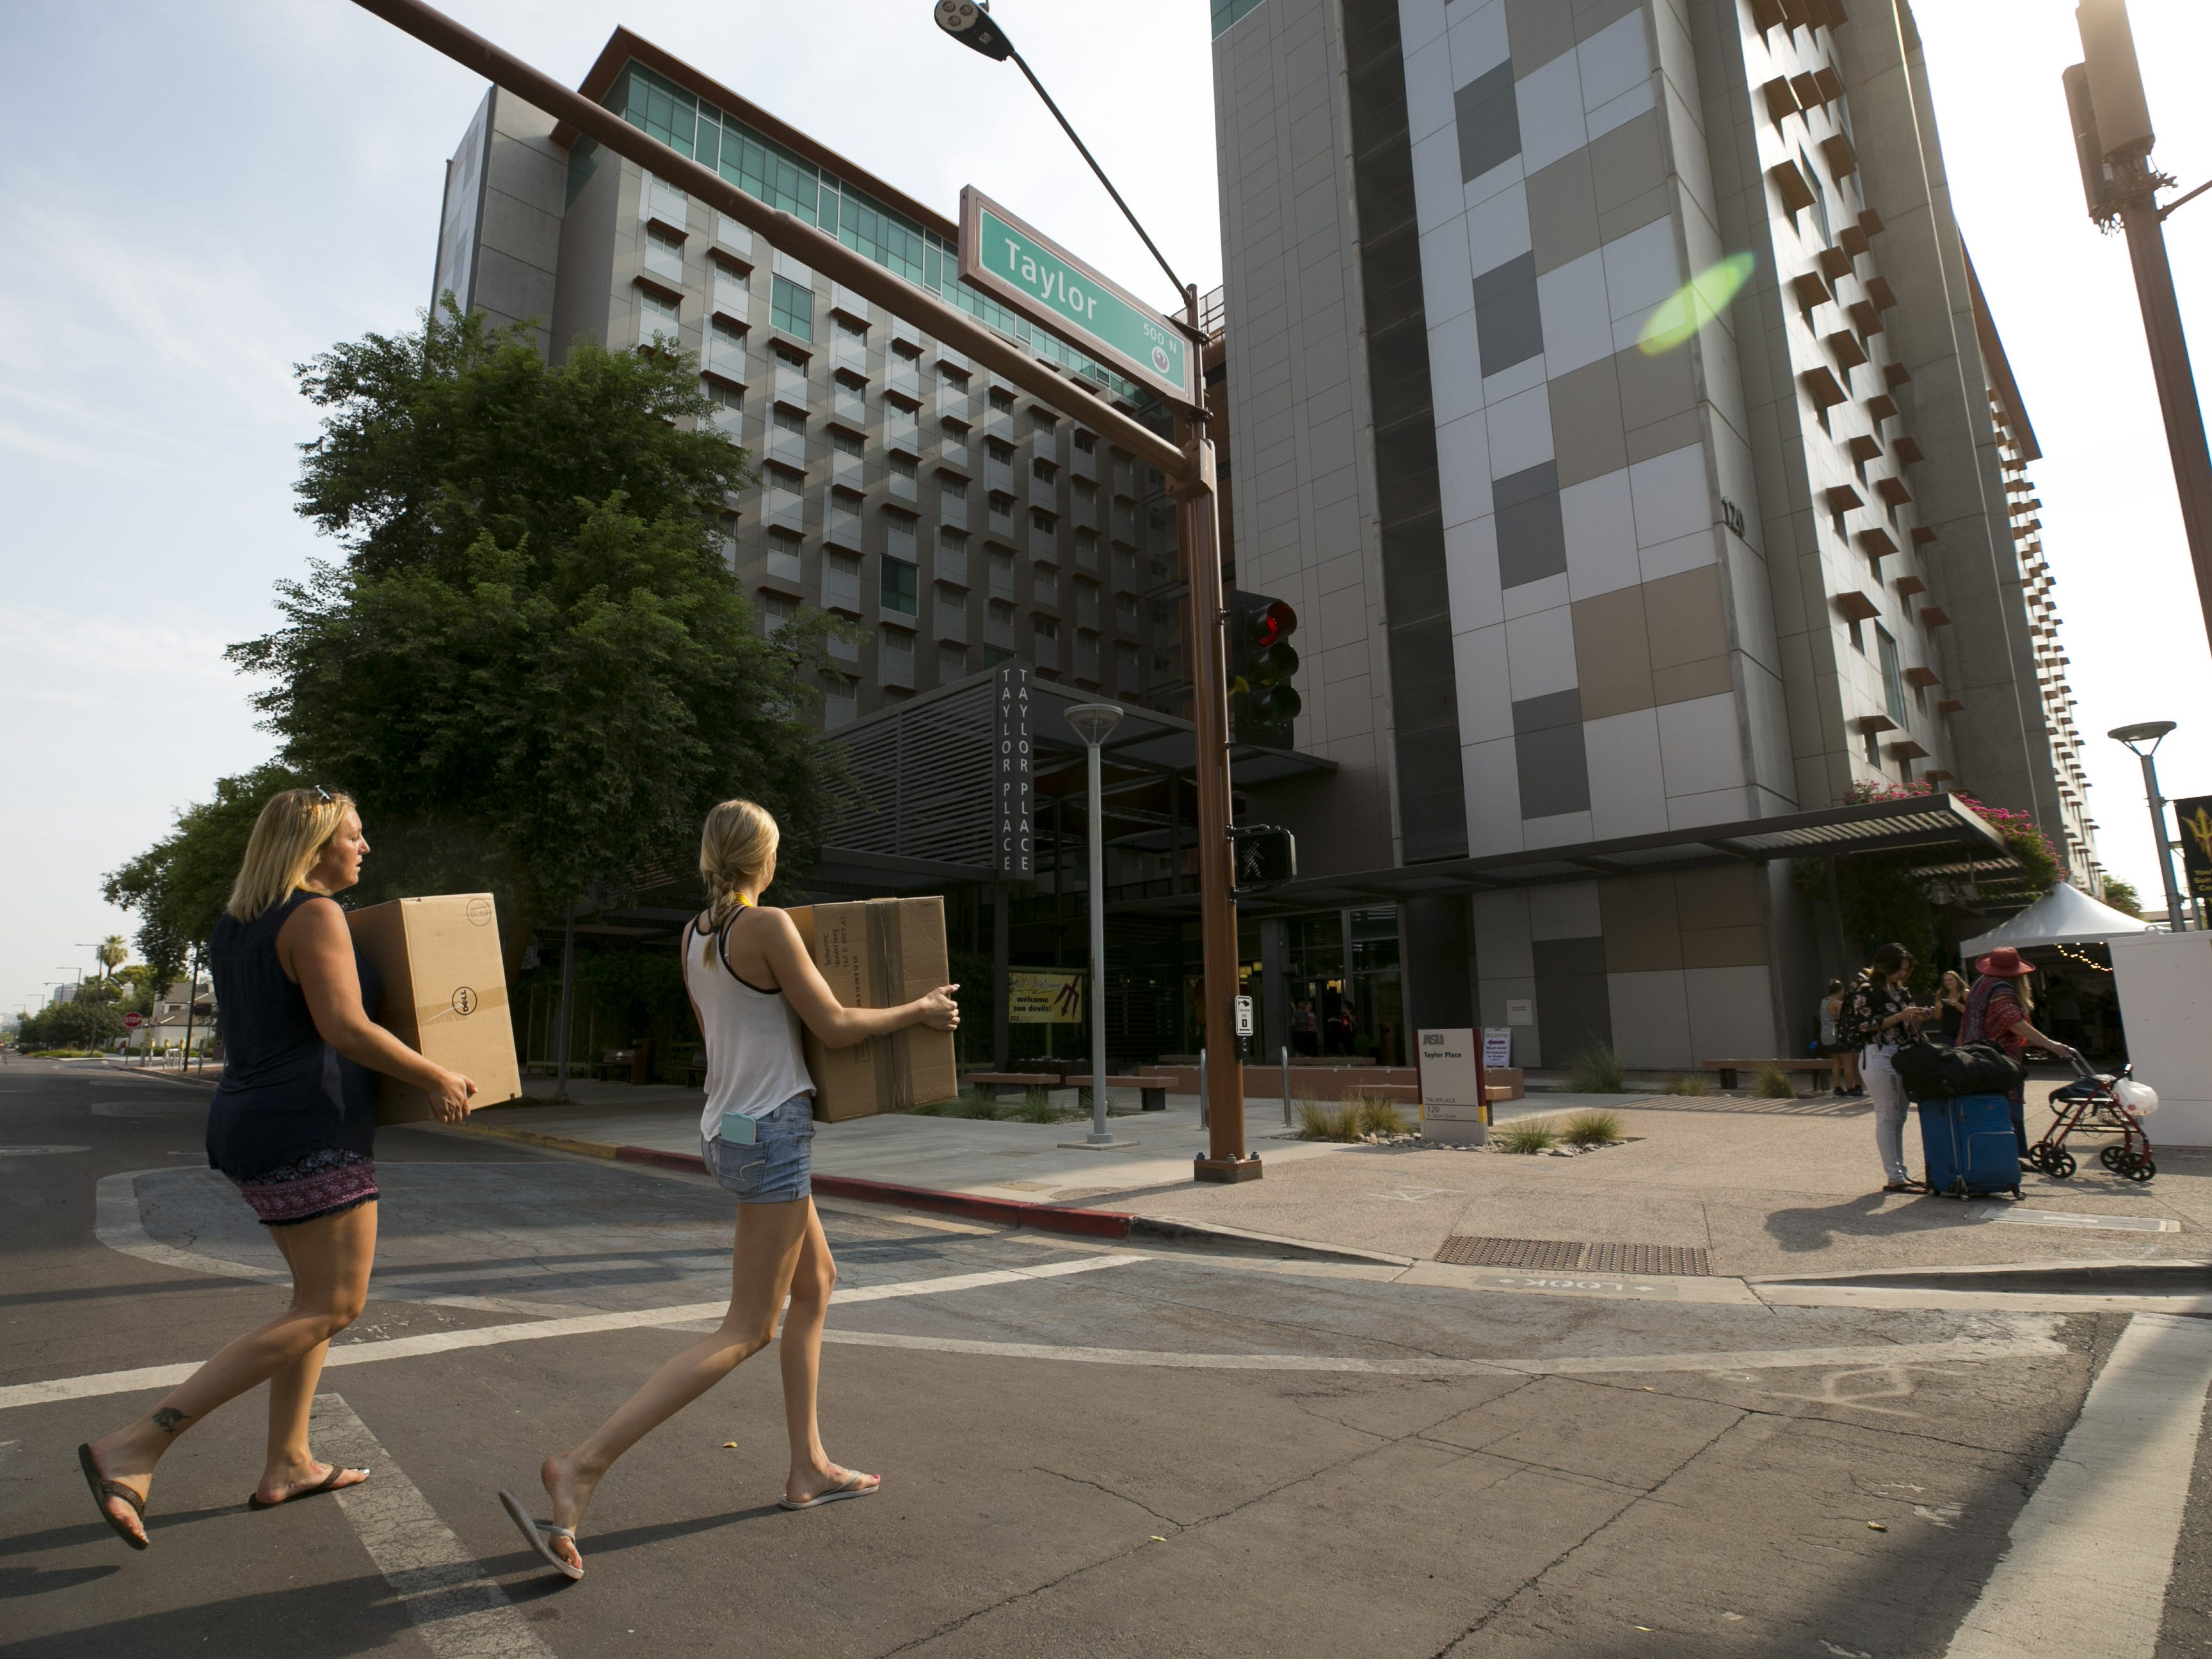 ASU move-in day at the Taylor Place dorm on the ASU downtown Phoenix campus on Aug. 10, 2018. The downtown Phoenix dorm opened in 2008.